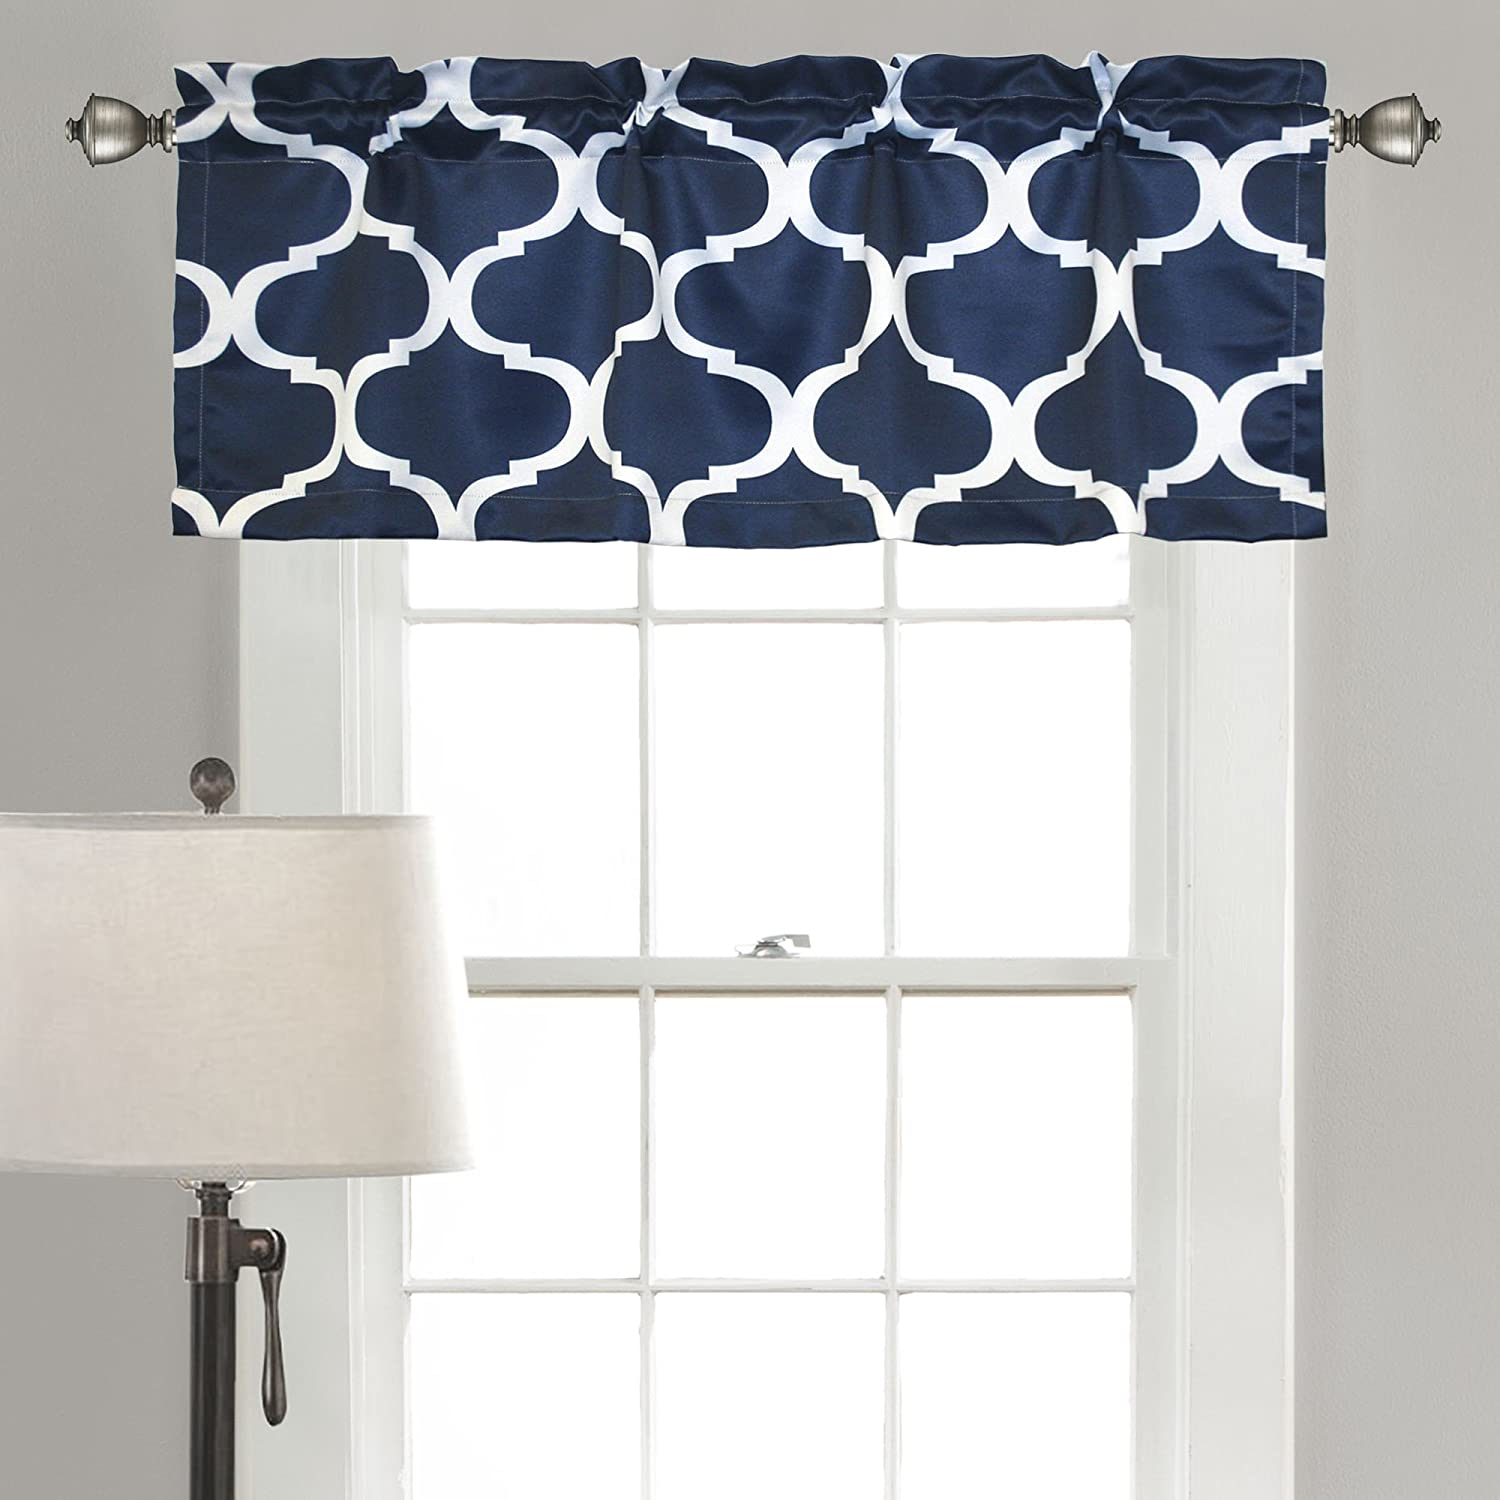 Amazoncom Lush Decor Geo Valance 18 X 52 Navy Home Kitchen